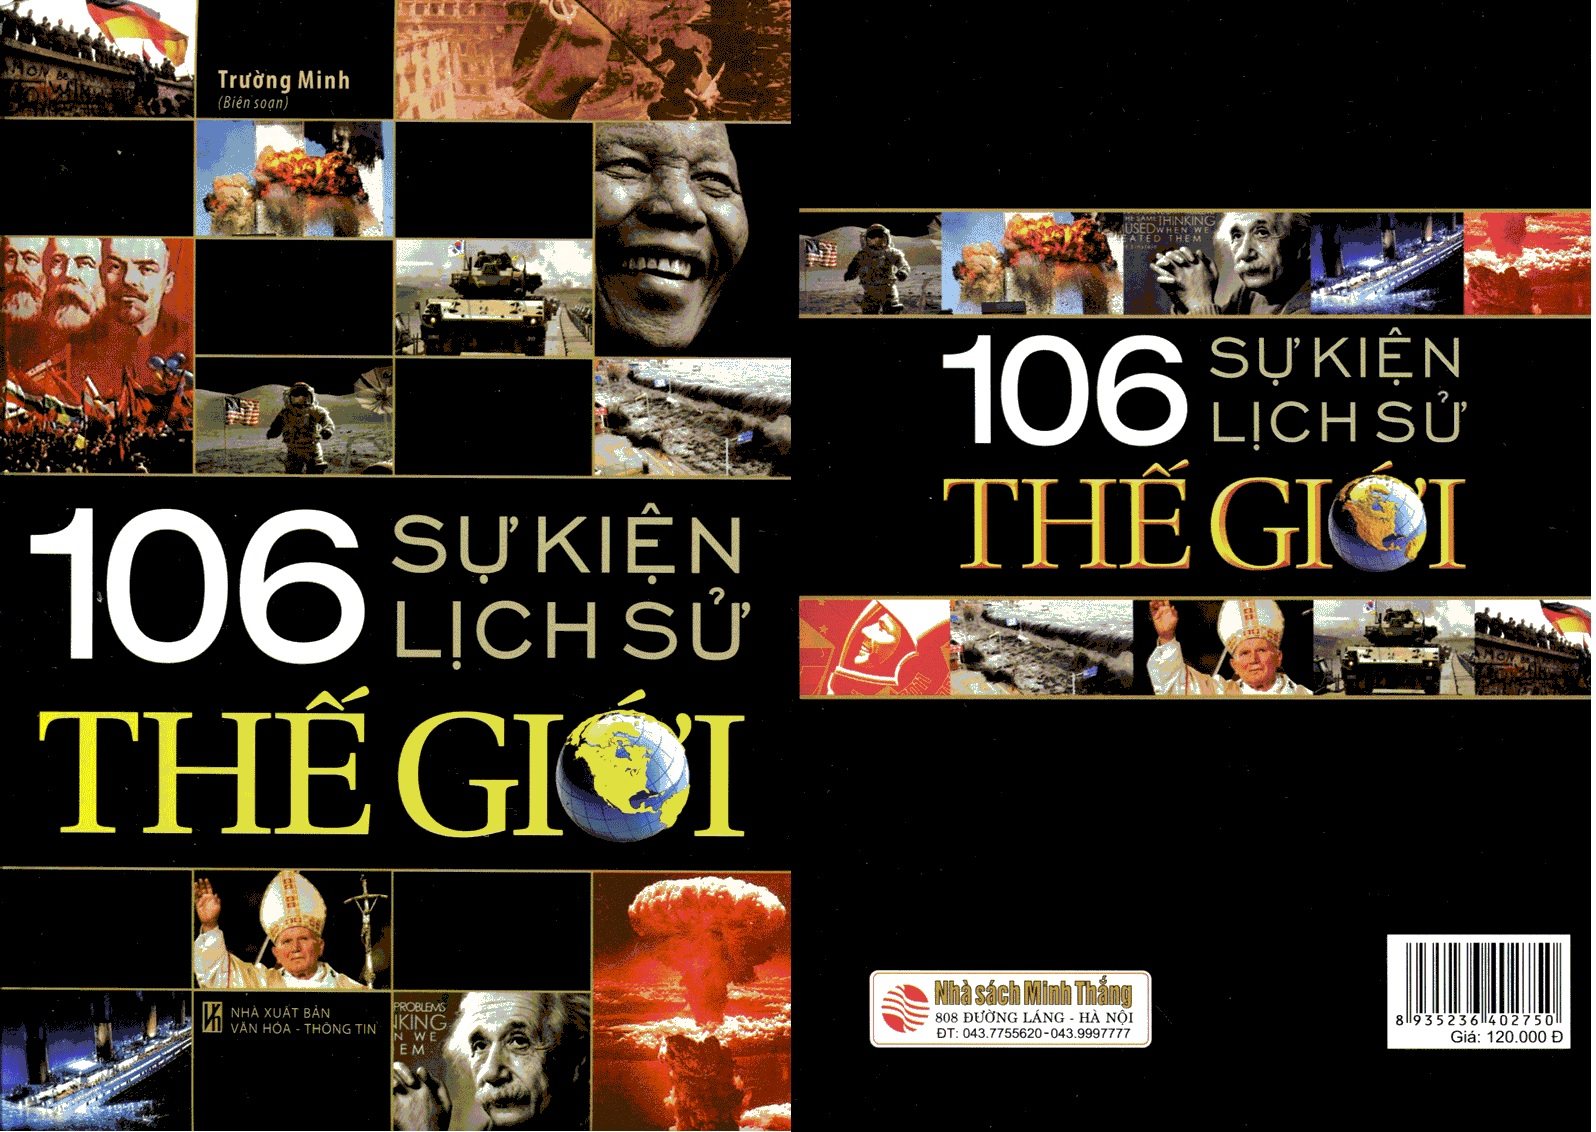 106-su-kien-the-gioi